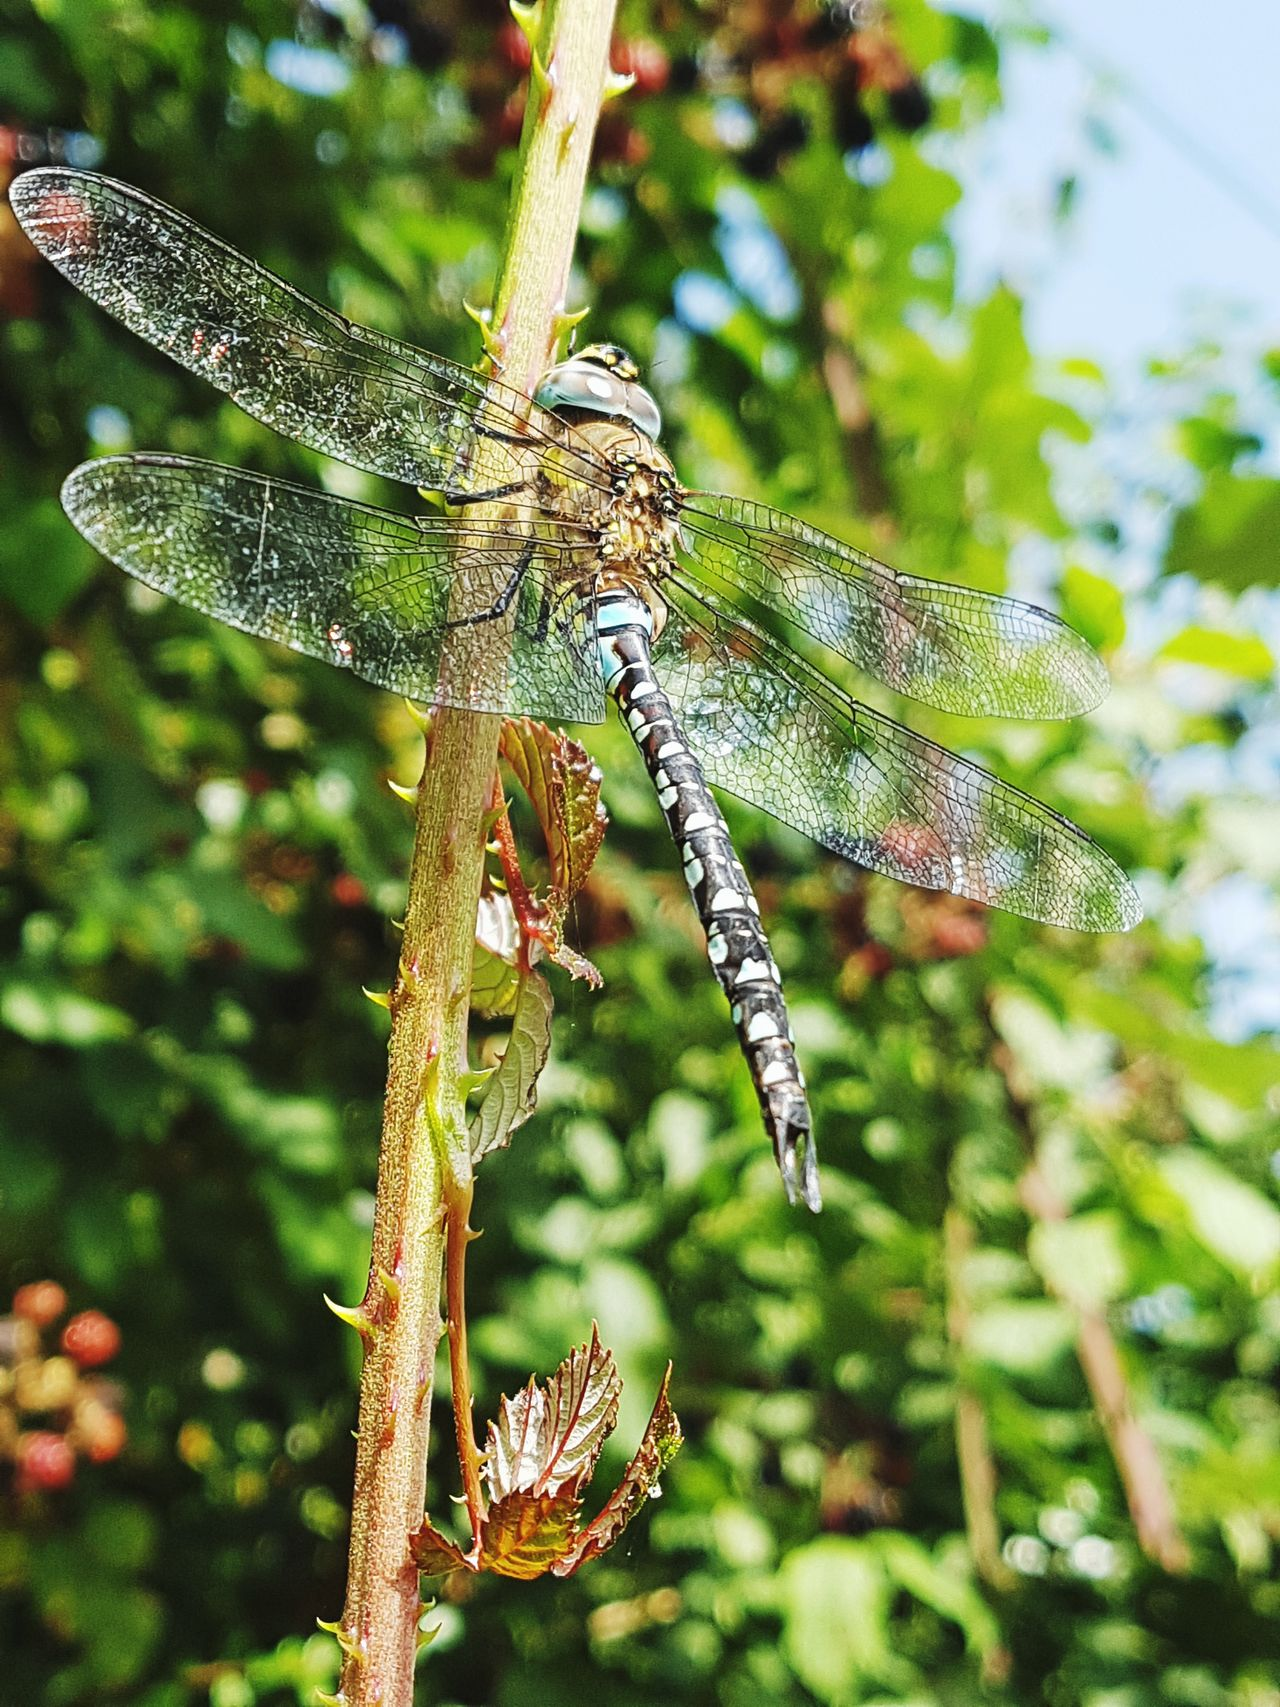 Fly away with me, to a place where we could be anything we want to be 💕🌿🌹🎶🎼🎵 Tom Walker Nature_collection Travel Photography C'mon Fly Away With Me Nature Animals In The Wild Dragonfly Nature_perfection English Countryside